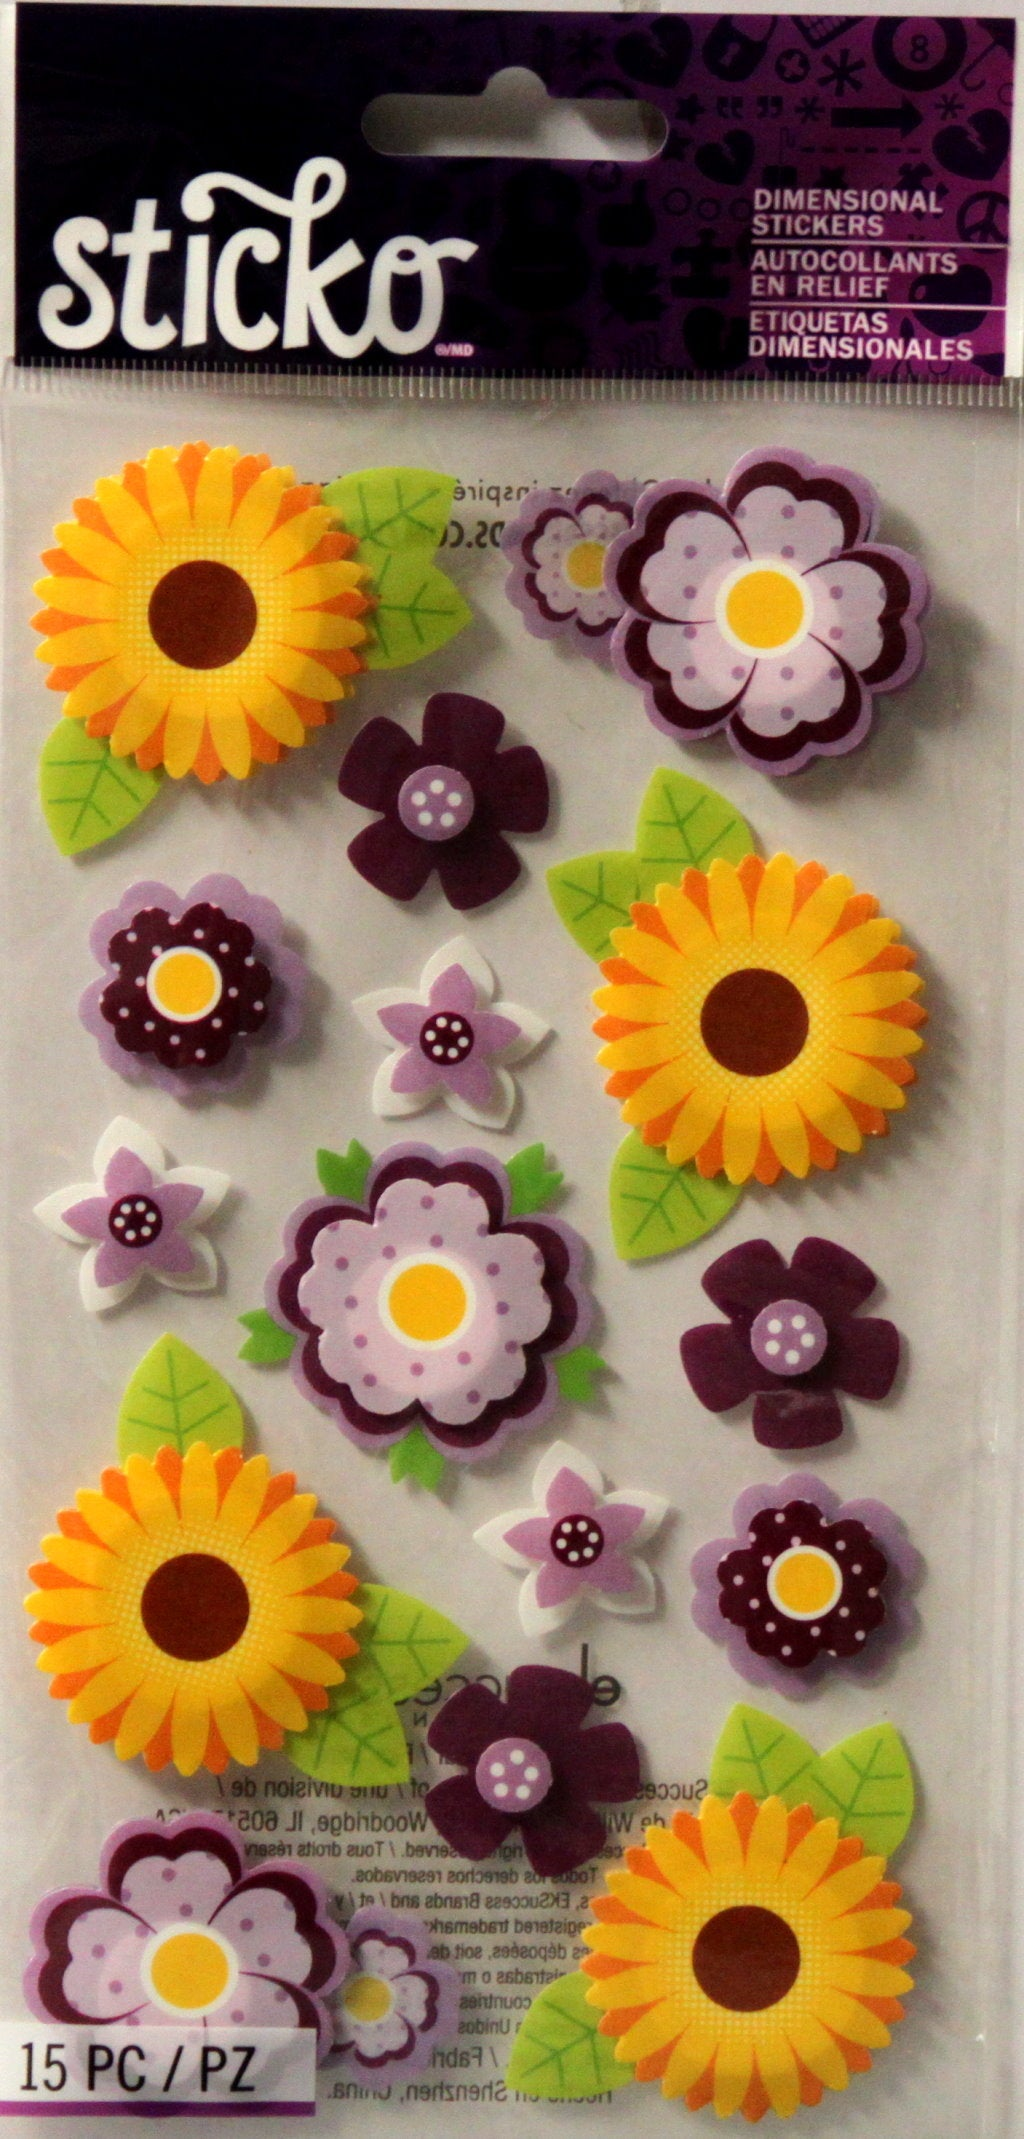 Sticko Layered Vellum Daisies Dimensional Stickers